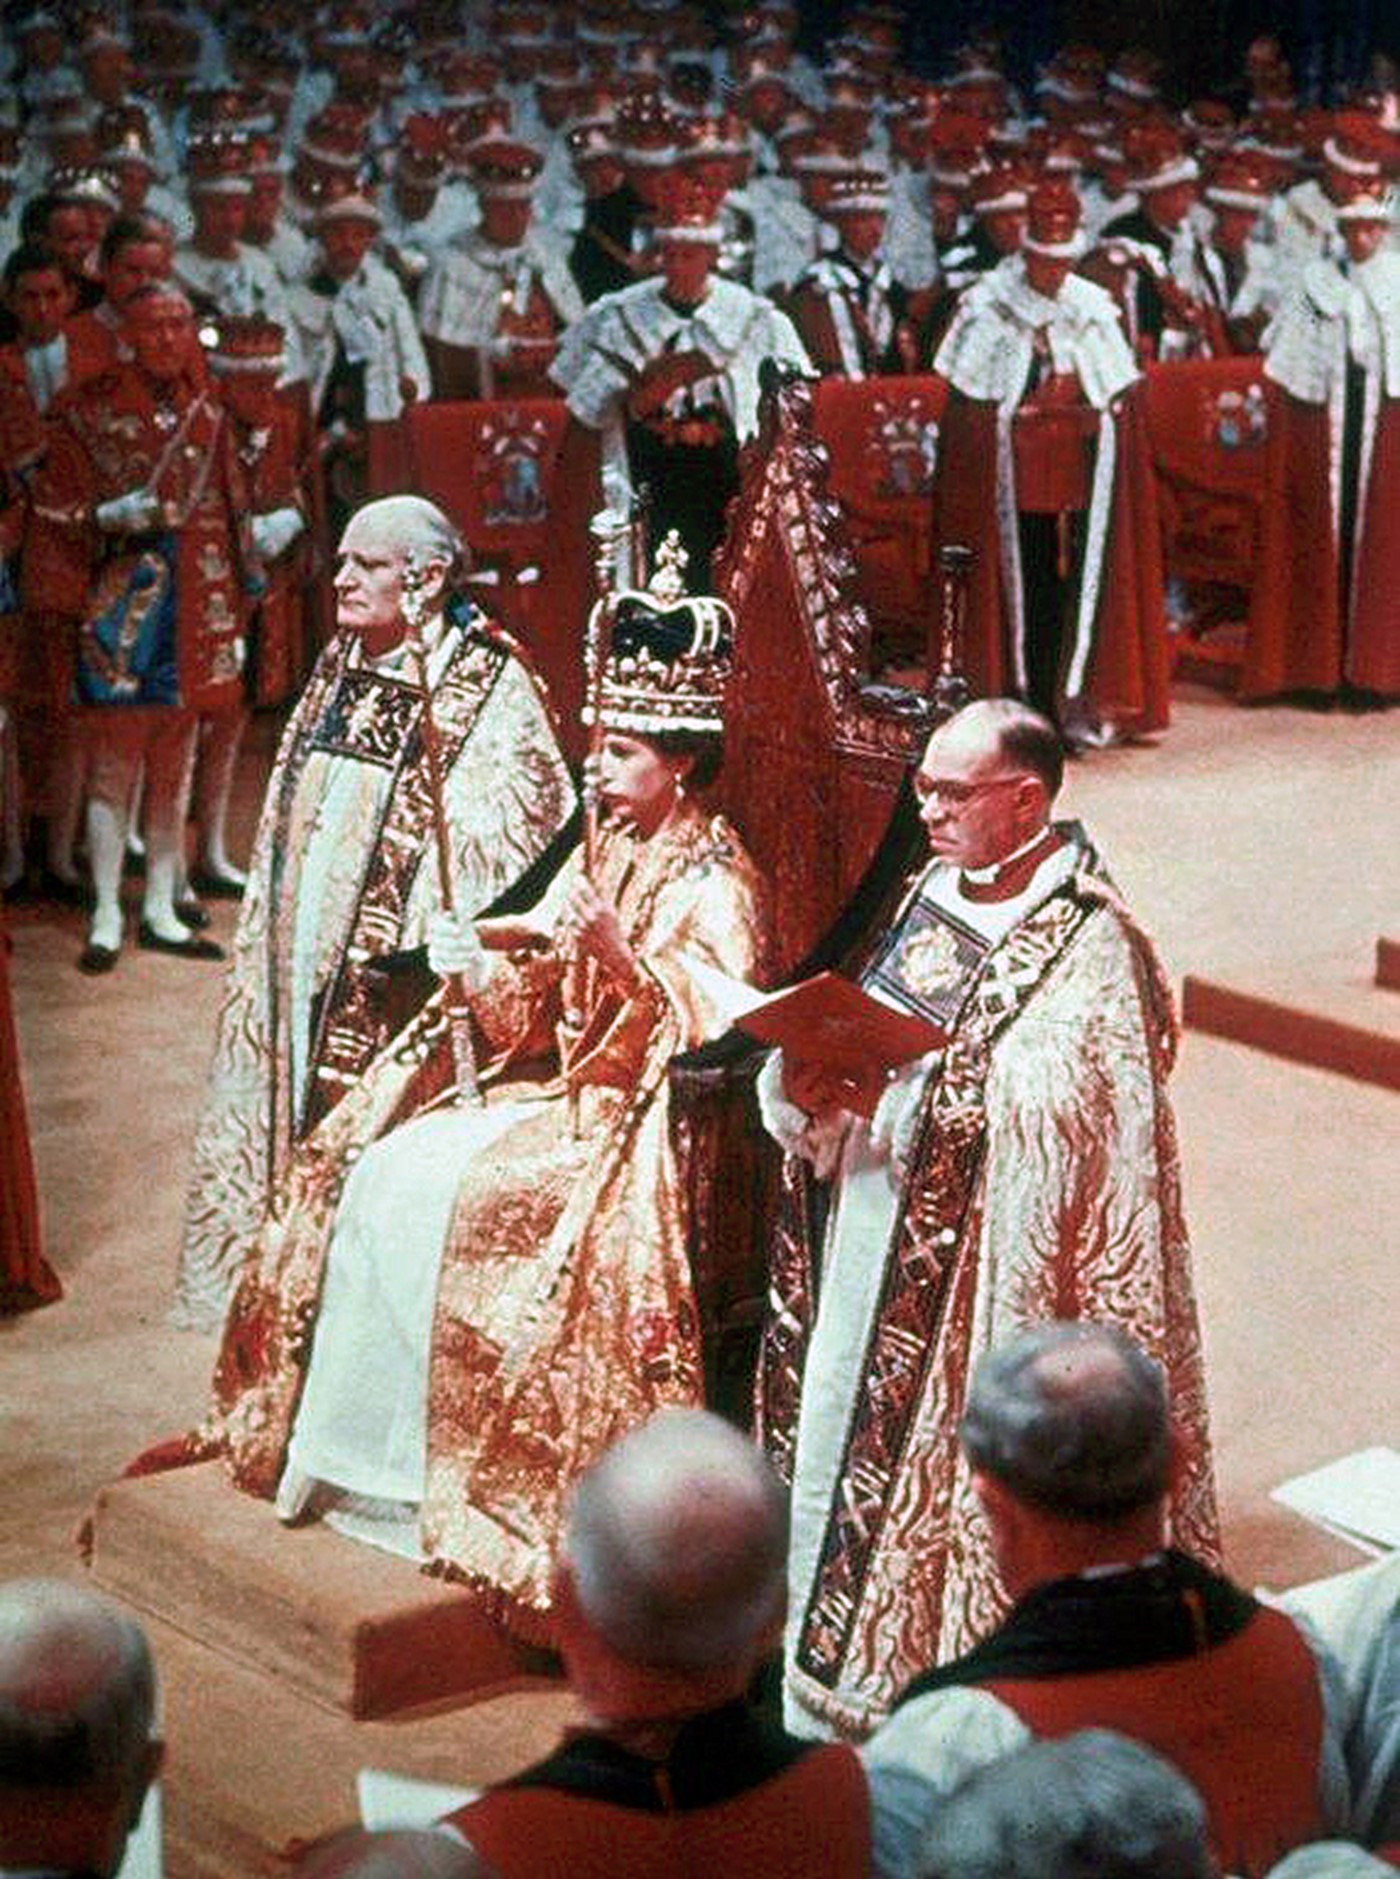 Coronation 1953 - Queen in Chair Getty images copyright.jpg